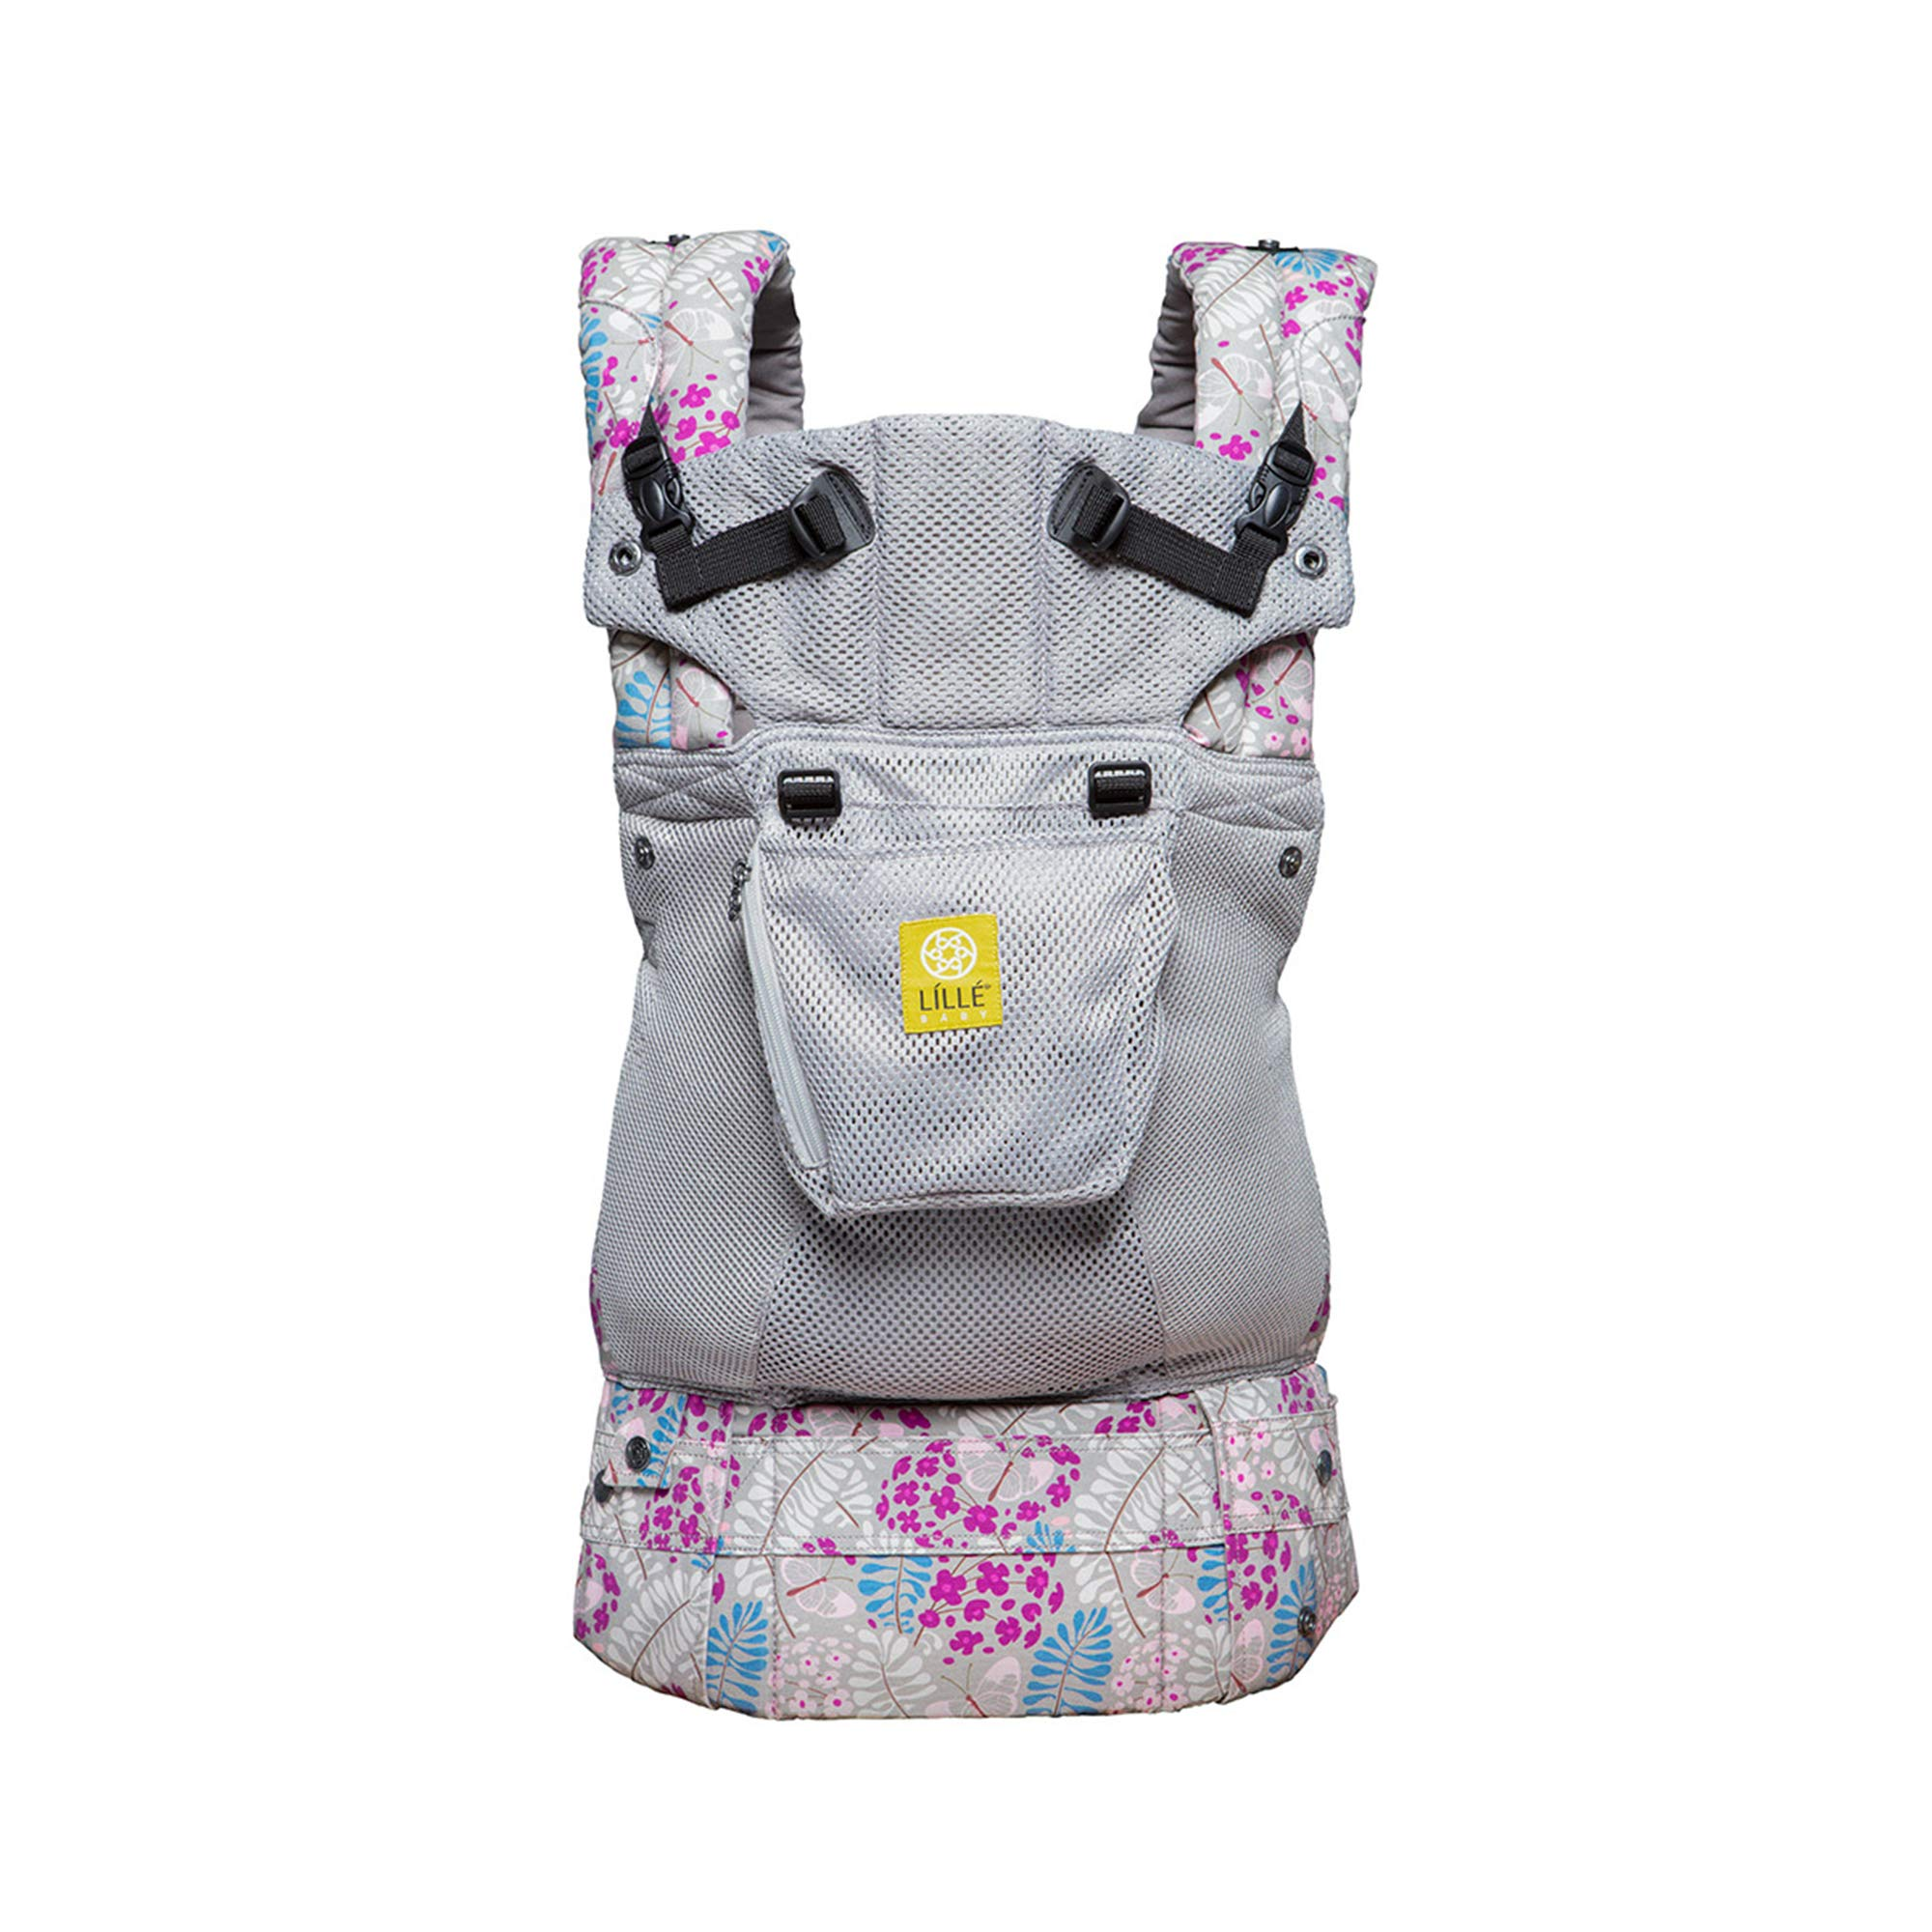 f970cf7c7e8 LÍLLÉbaby The Complete Airflow SIX-Position 360° Ergonomic Baby   Child  Carrier